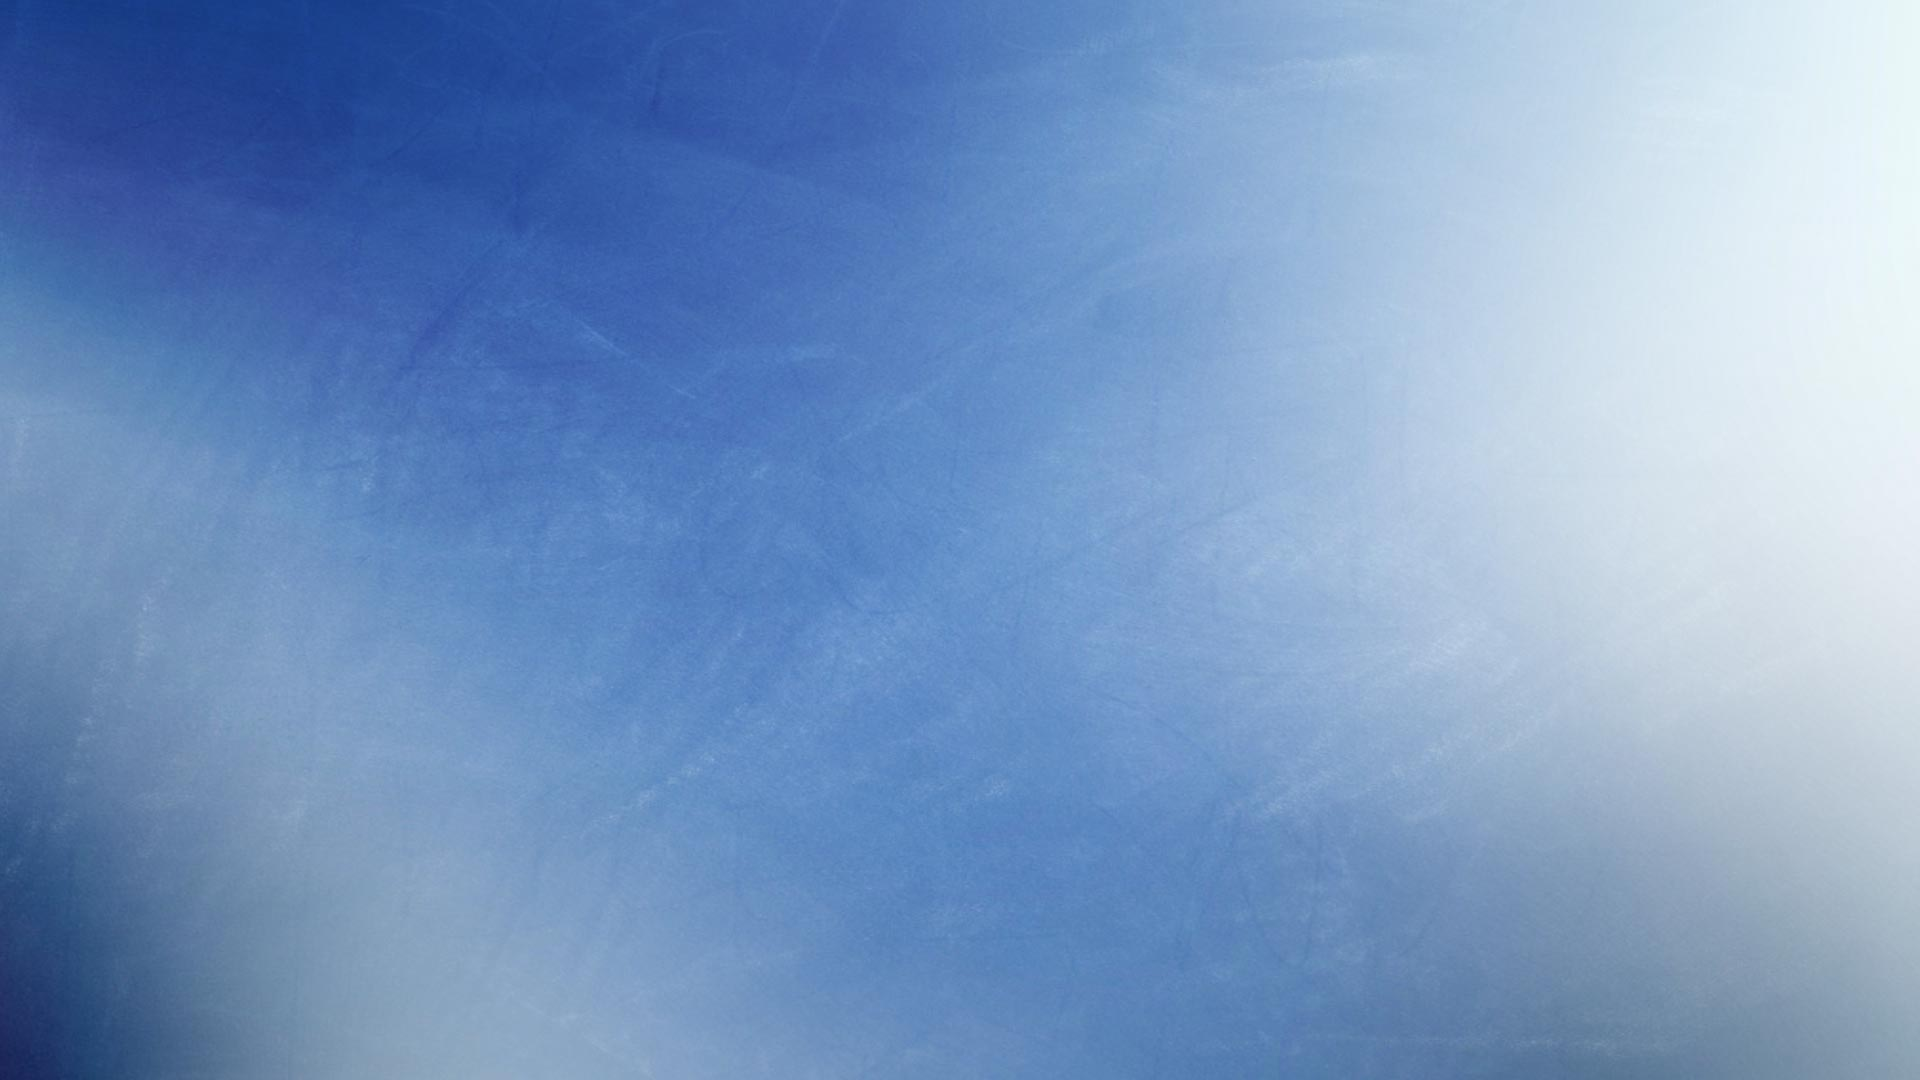 wallpaper web wallpaperweb sky background color images 1920x1080